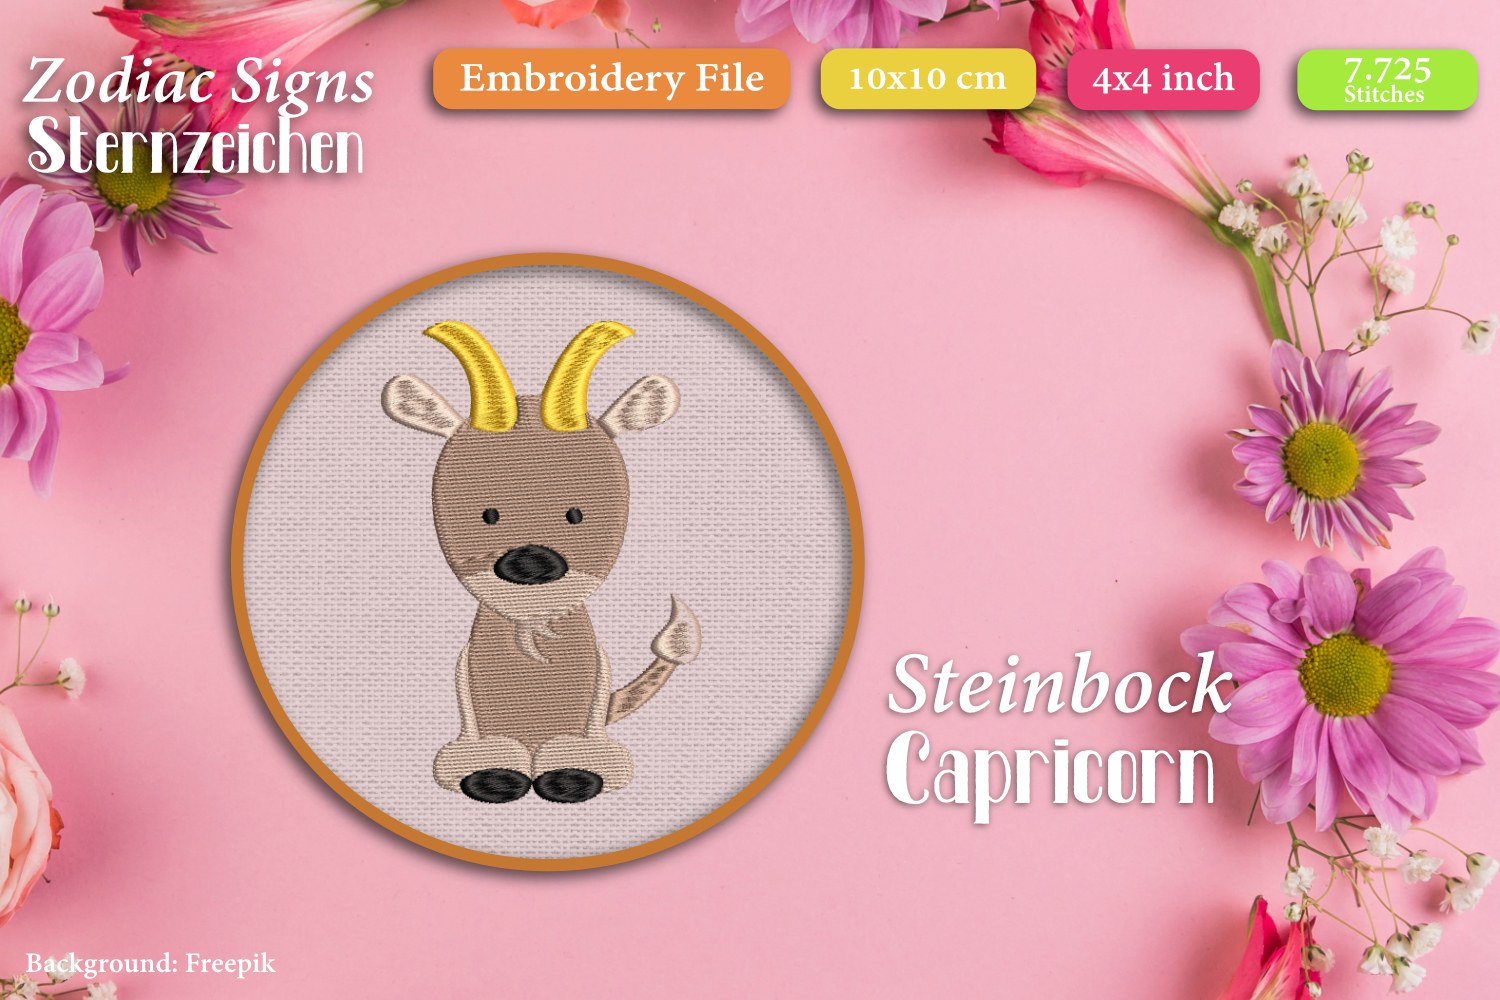 Zodiac signs - Embroidery Files - Bundle example image 2